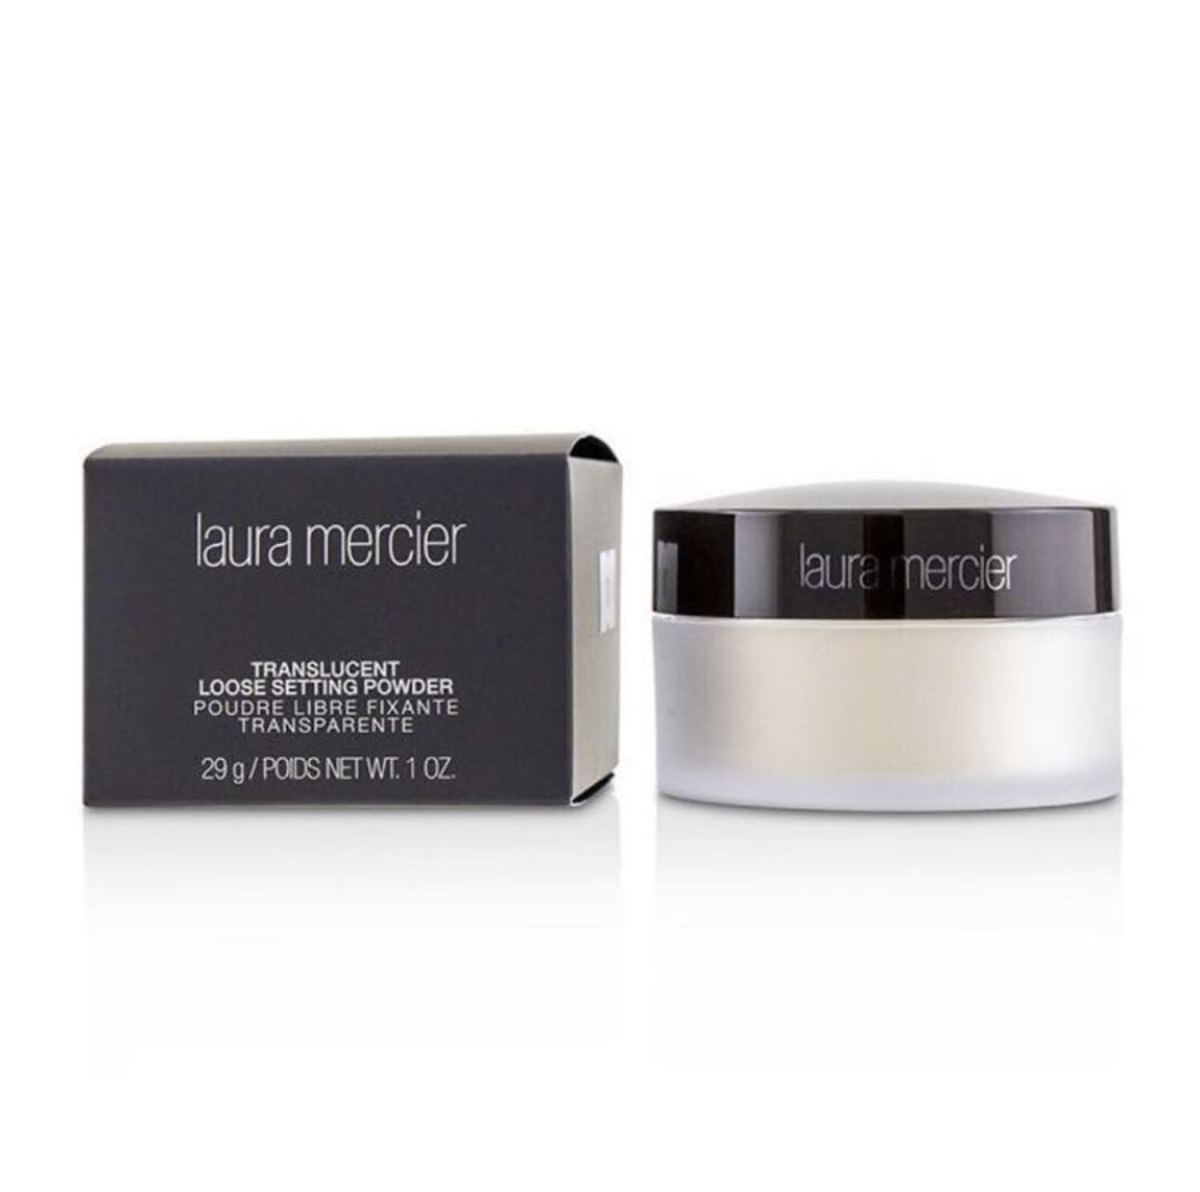 Loose Setting Powder - Translucent (29g / 1oz) [2018 New Version]